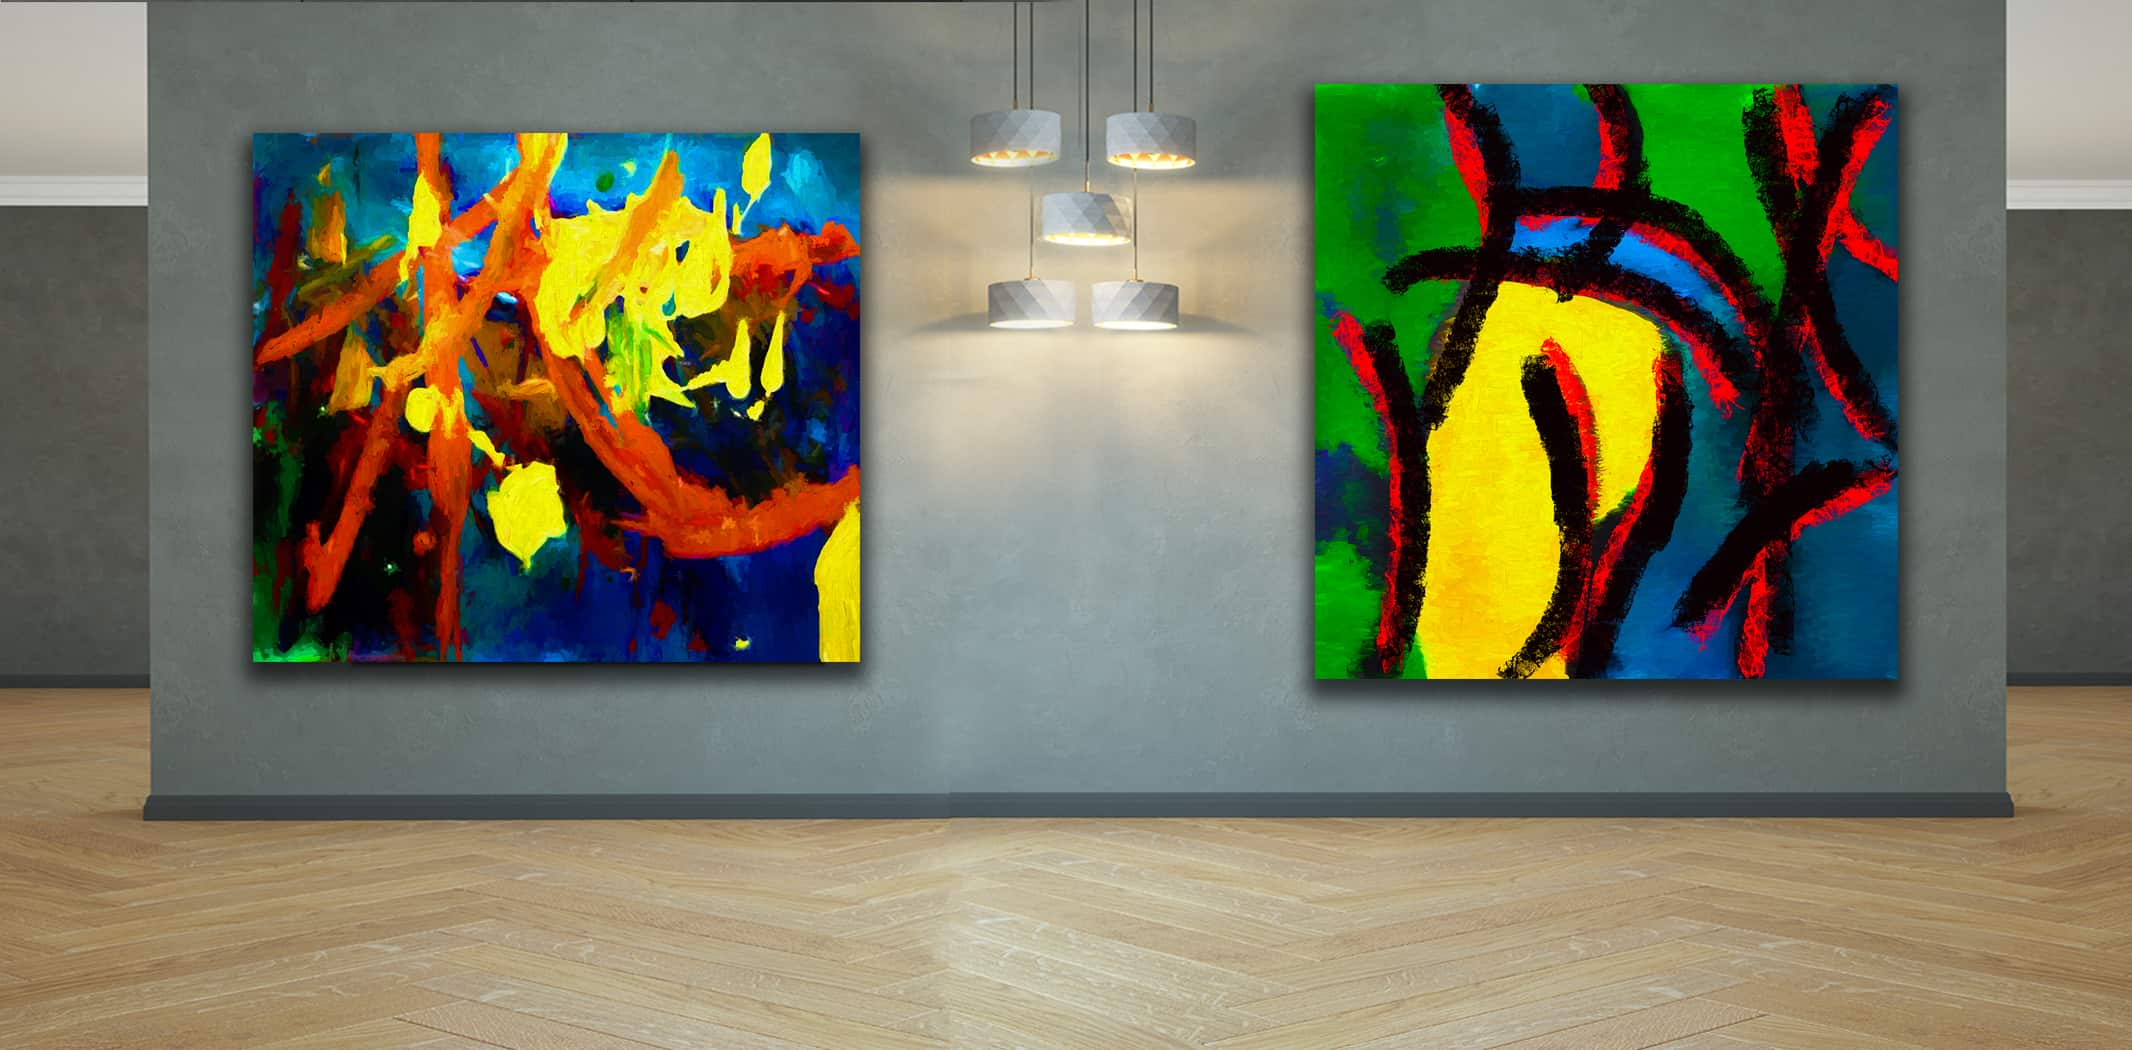 ABSTRACT ART GALLERY 4